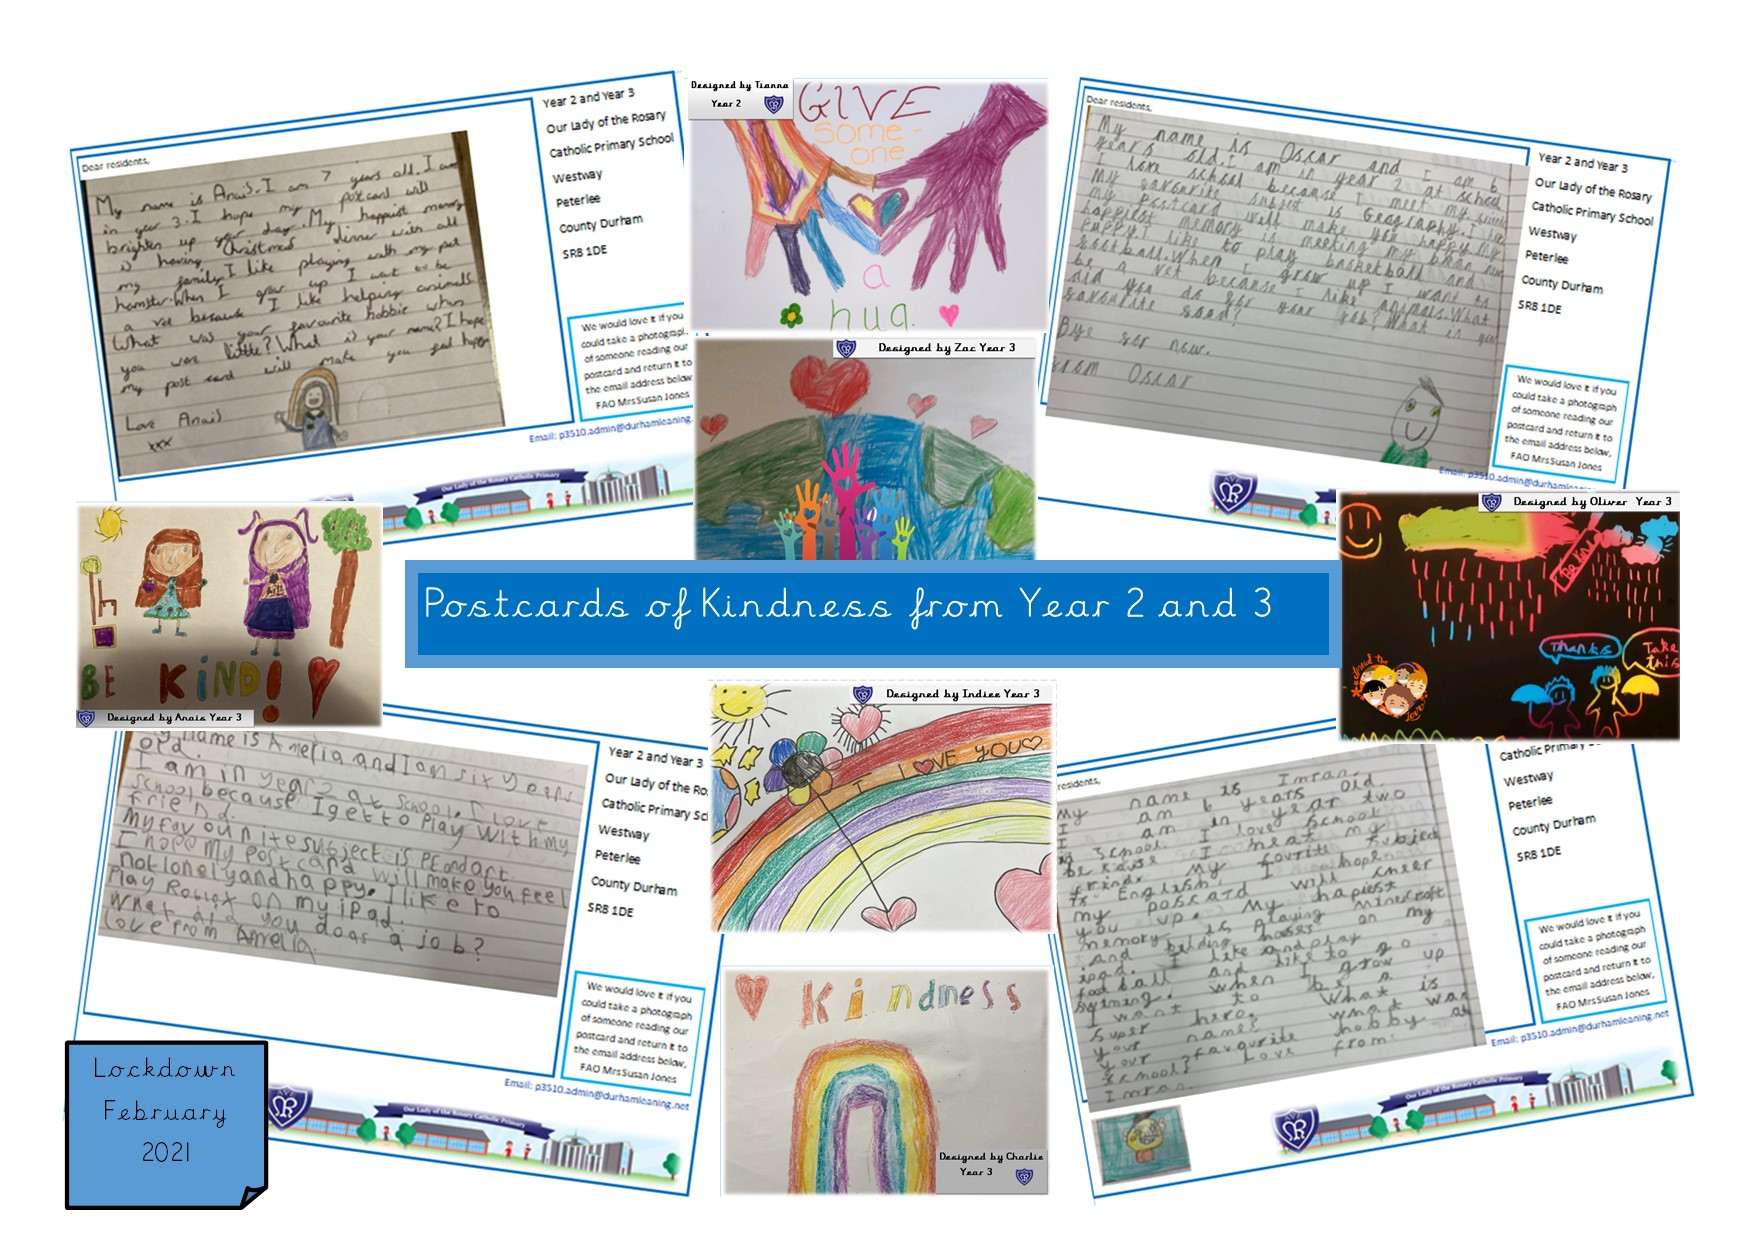 Schoolchildren Spreading Kindness Through Postcards Across Durham